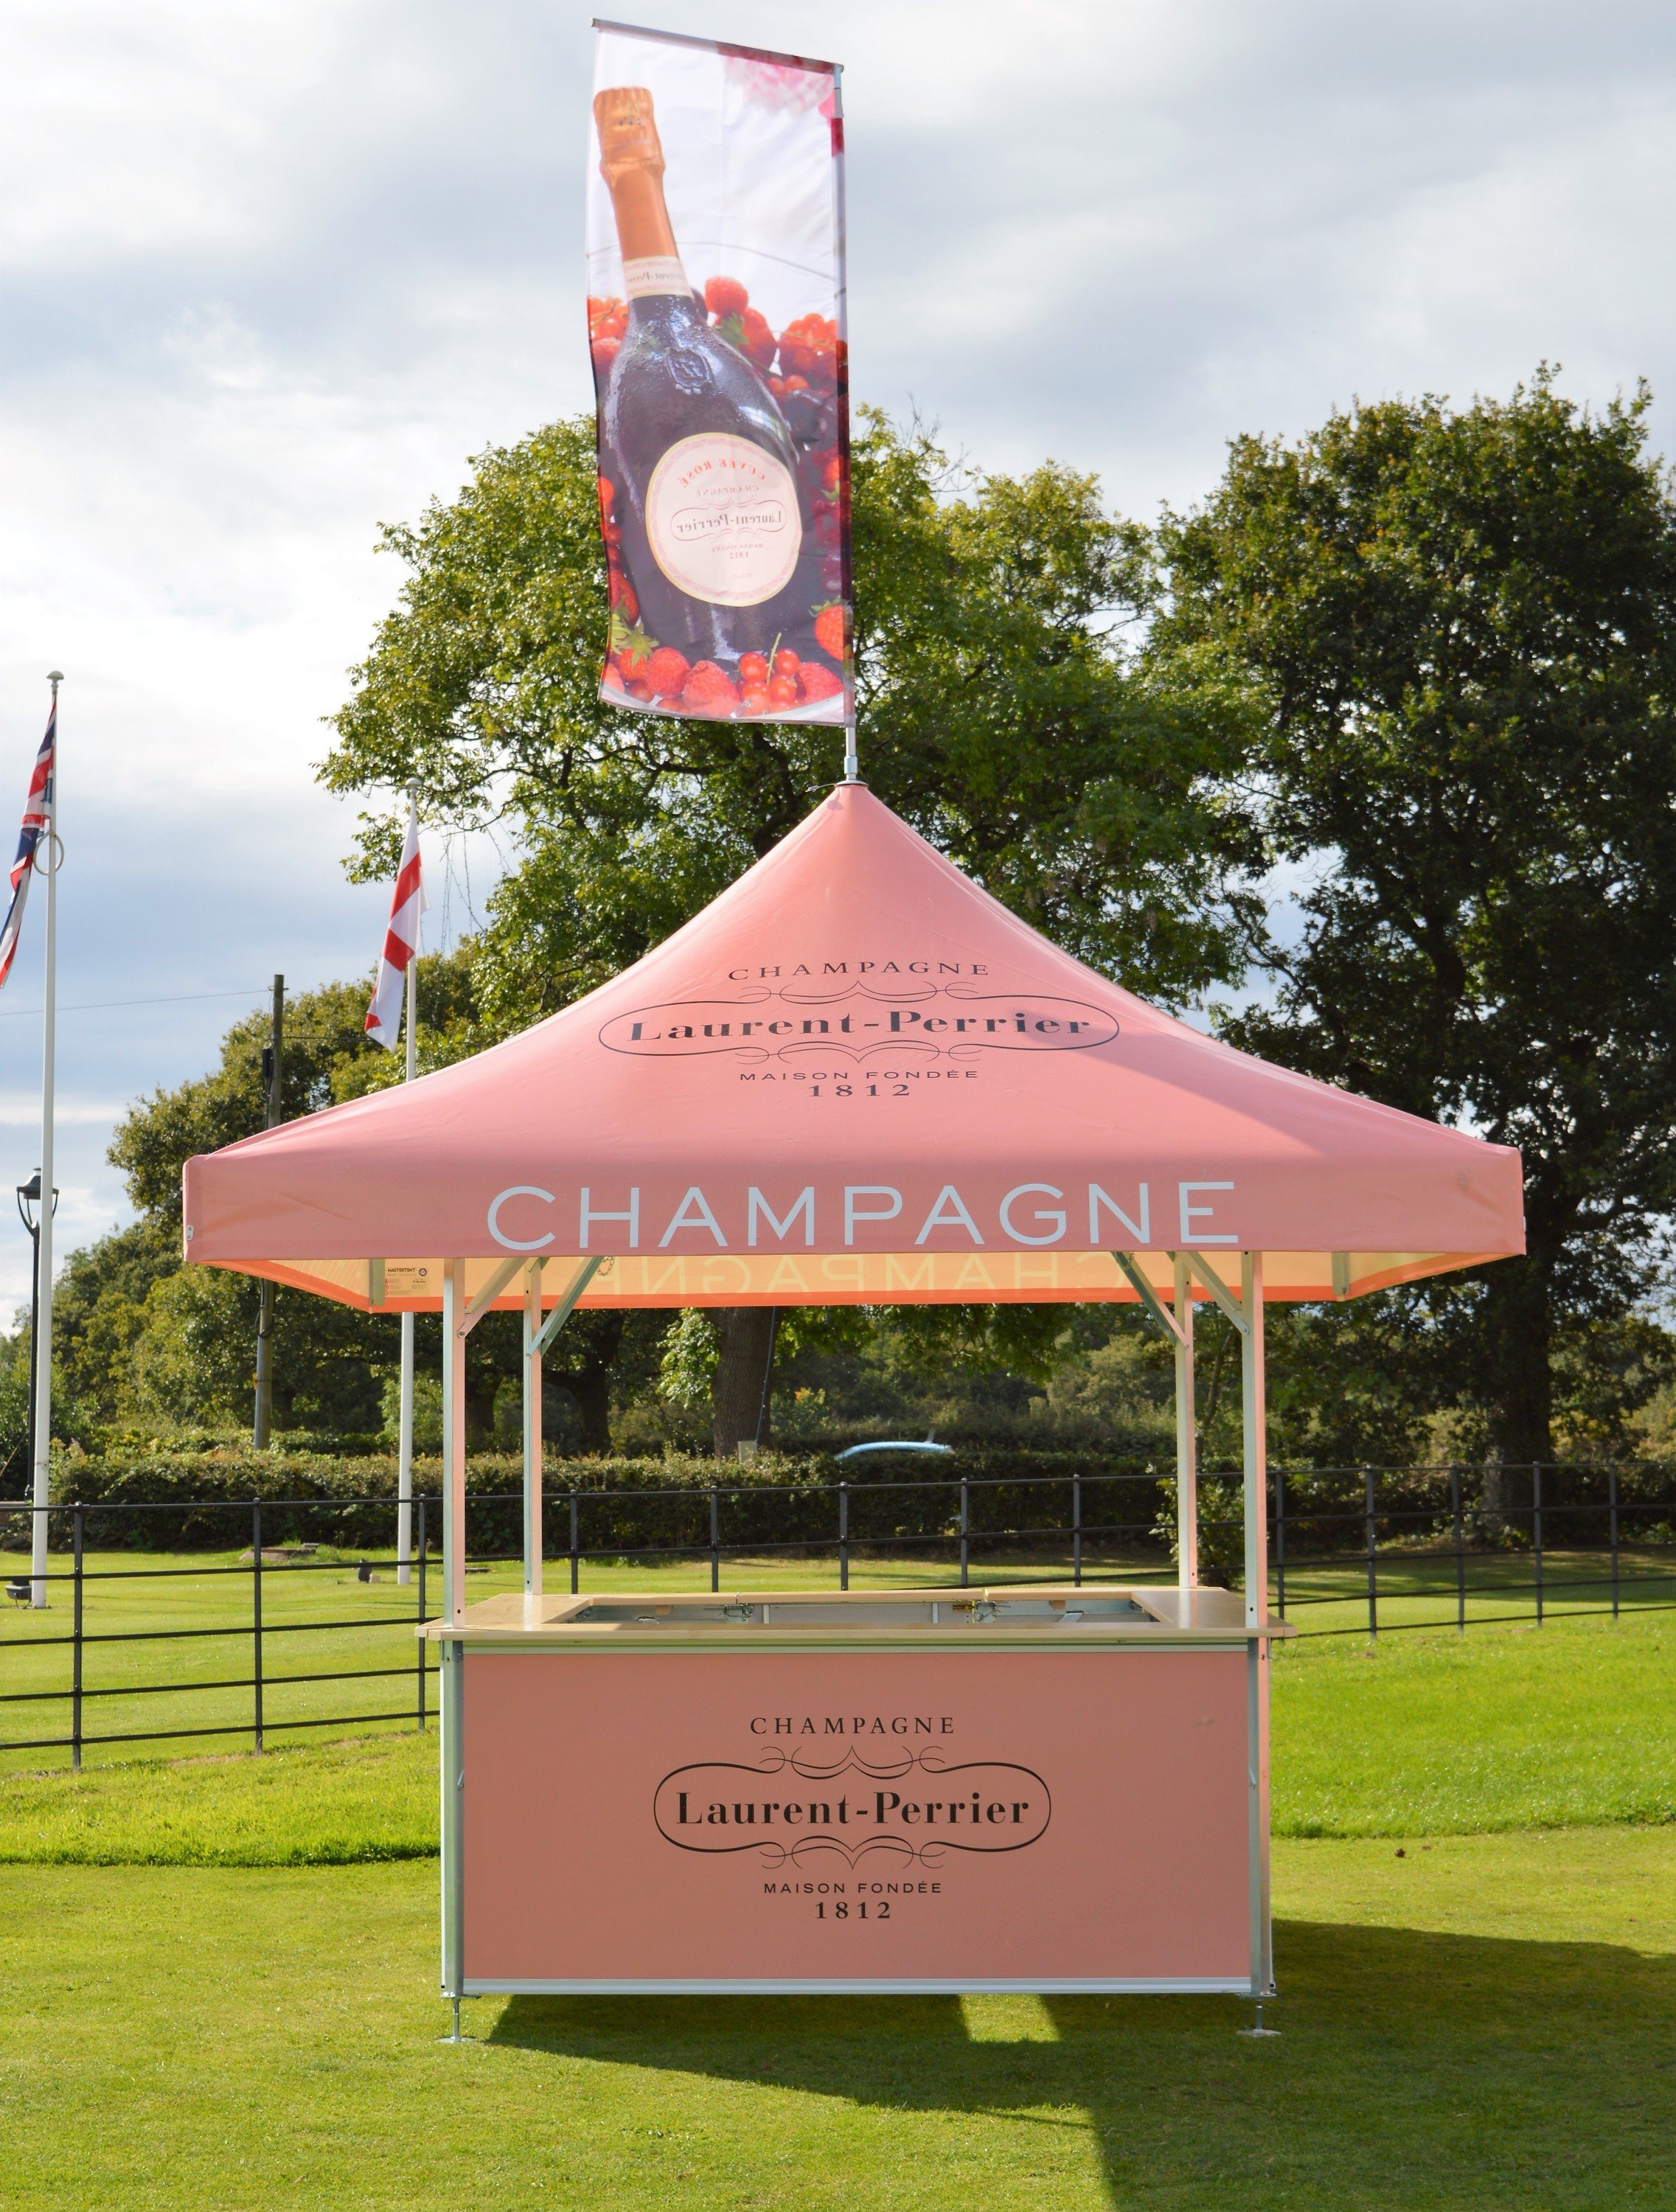 <p>Event, Mobile & Stadia Bars – Tents & Marquees – Square Pavilion.</p> <p> </p> <p>Laurent Perrier Champagne Bar with branded Roof Flag</p> <p> </p> <p>Square Pavilions are ideal for smaller areas when space is at a premium. Can be branded to suit customer requirements.</p> <p> </p> <p>Ideal for serving drinks from for example premium champagne brands, but also serve well as an information point, sampling stand, ticket collection point and many more versatile uses</p>